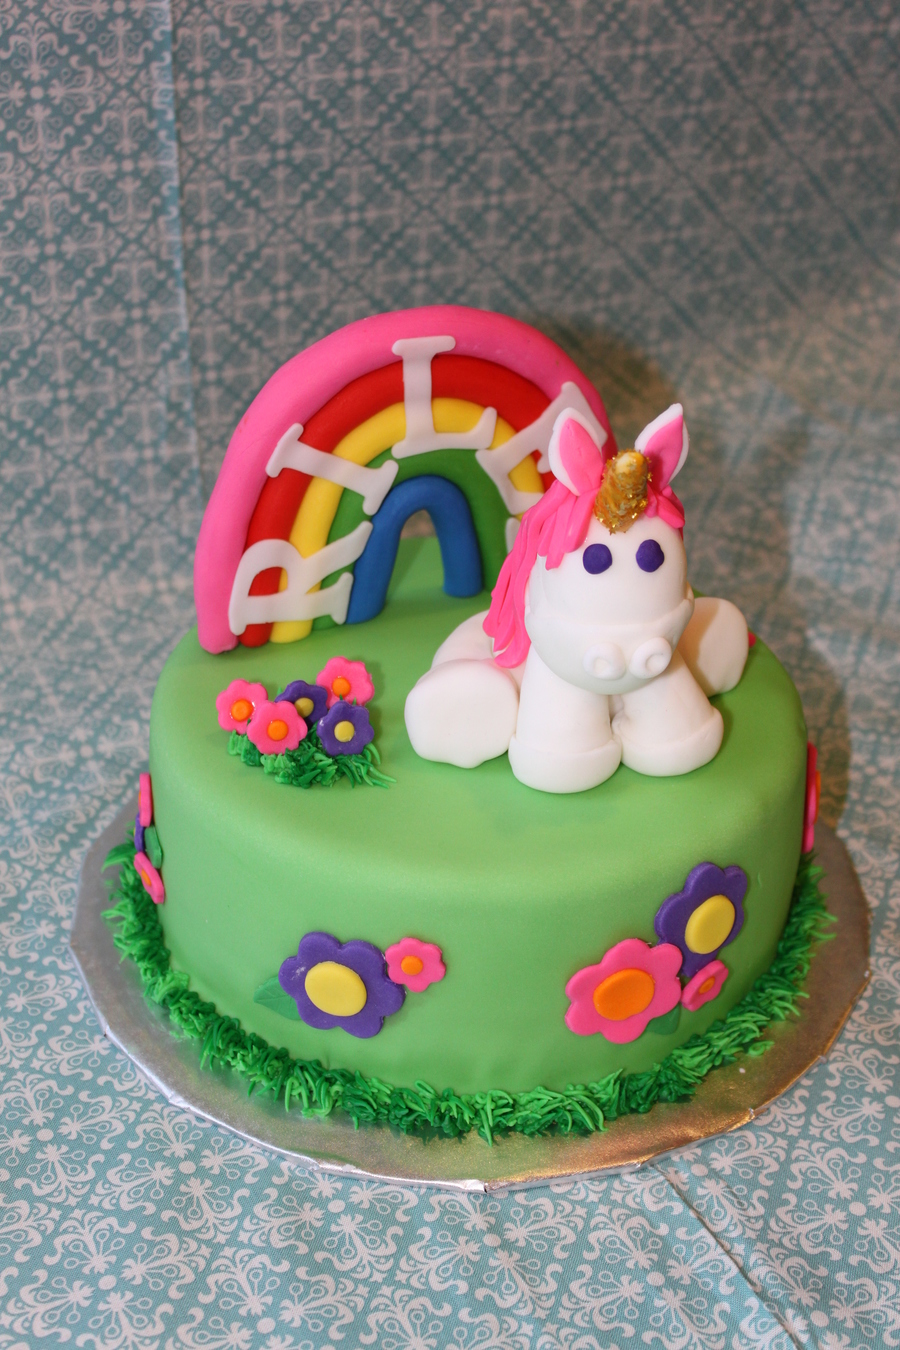 For A Little Girls Birthdayshe Is Huge Fan Of Unicorns And Rainbows So We Went All Out The Rainbow Cake Inside Vanilla With Buttercream